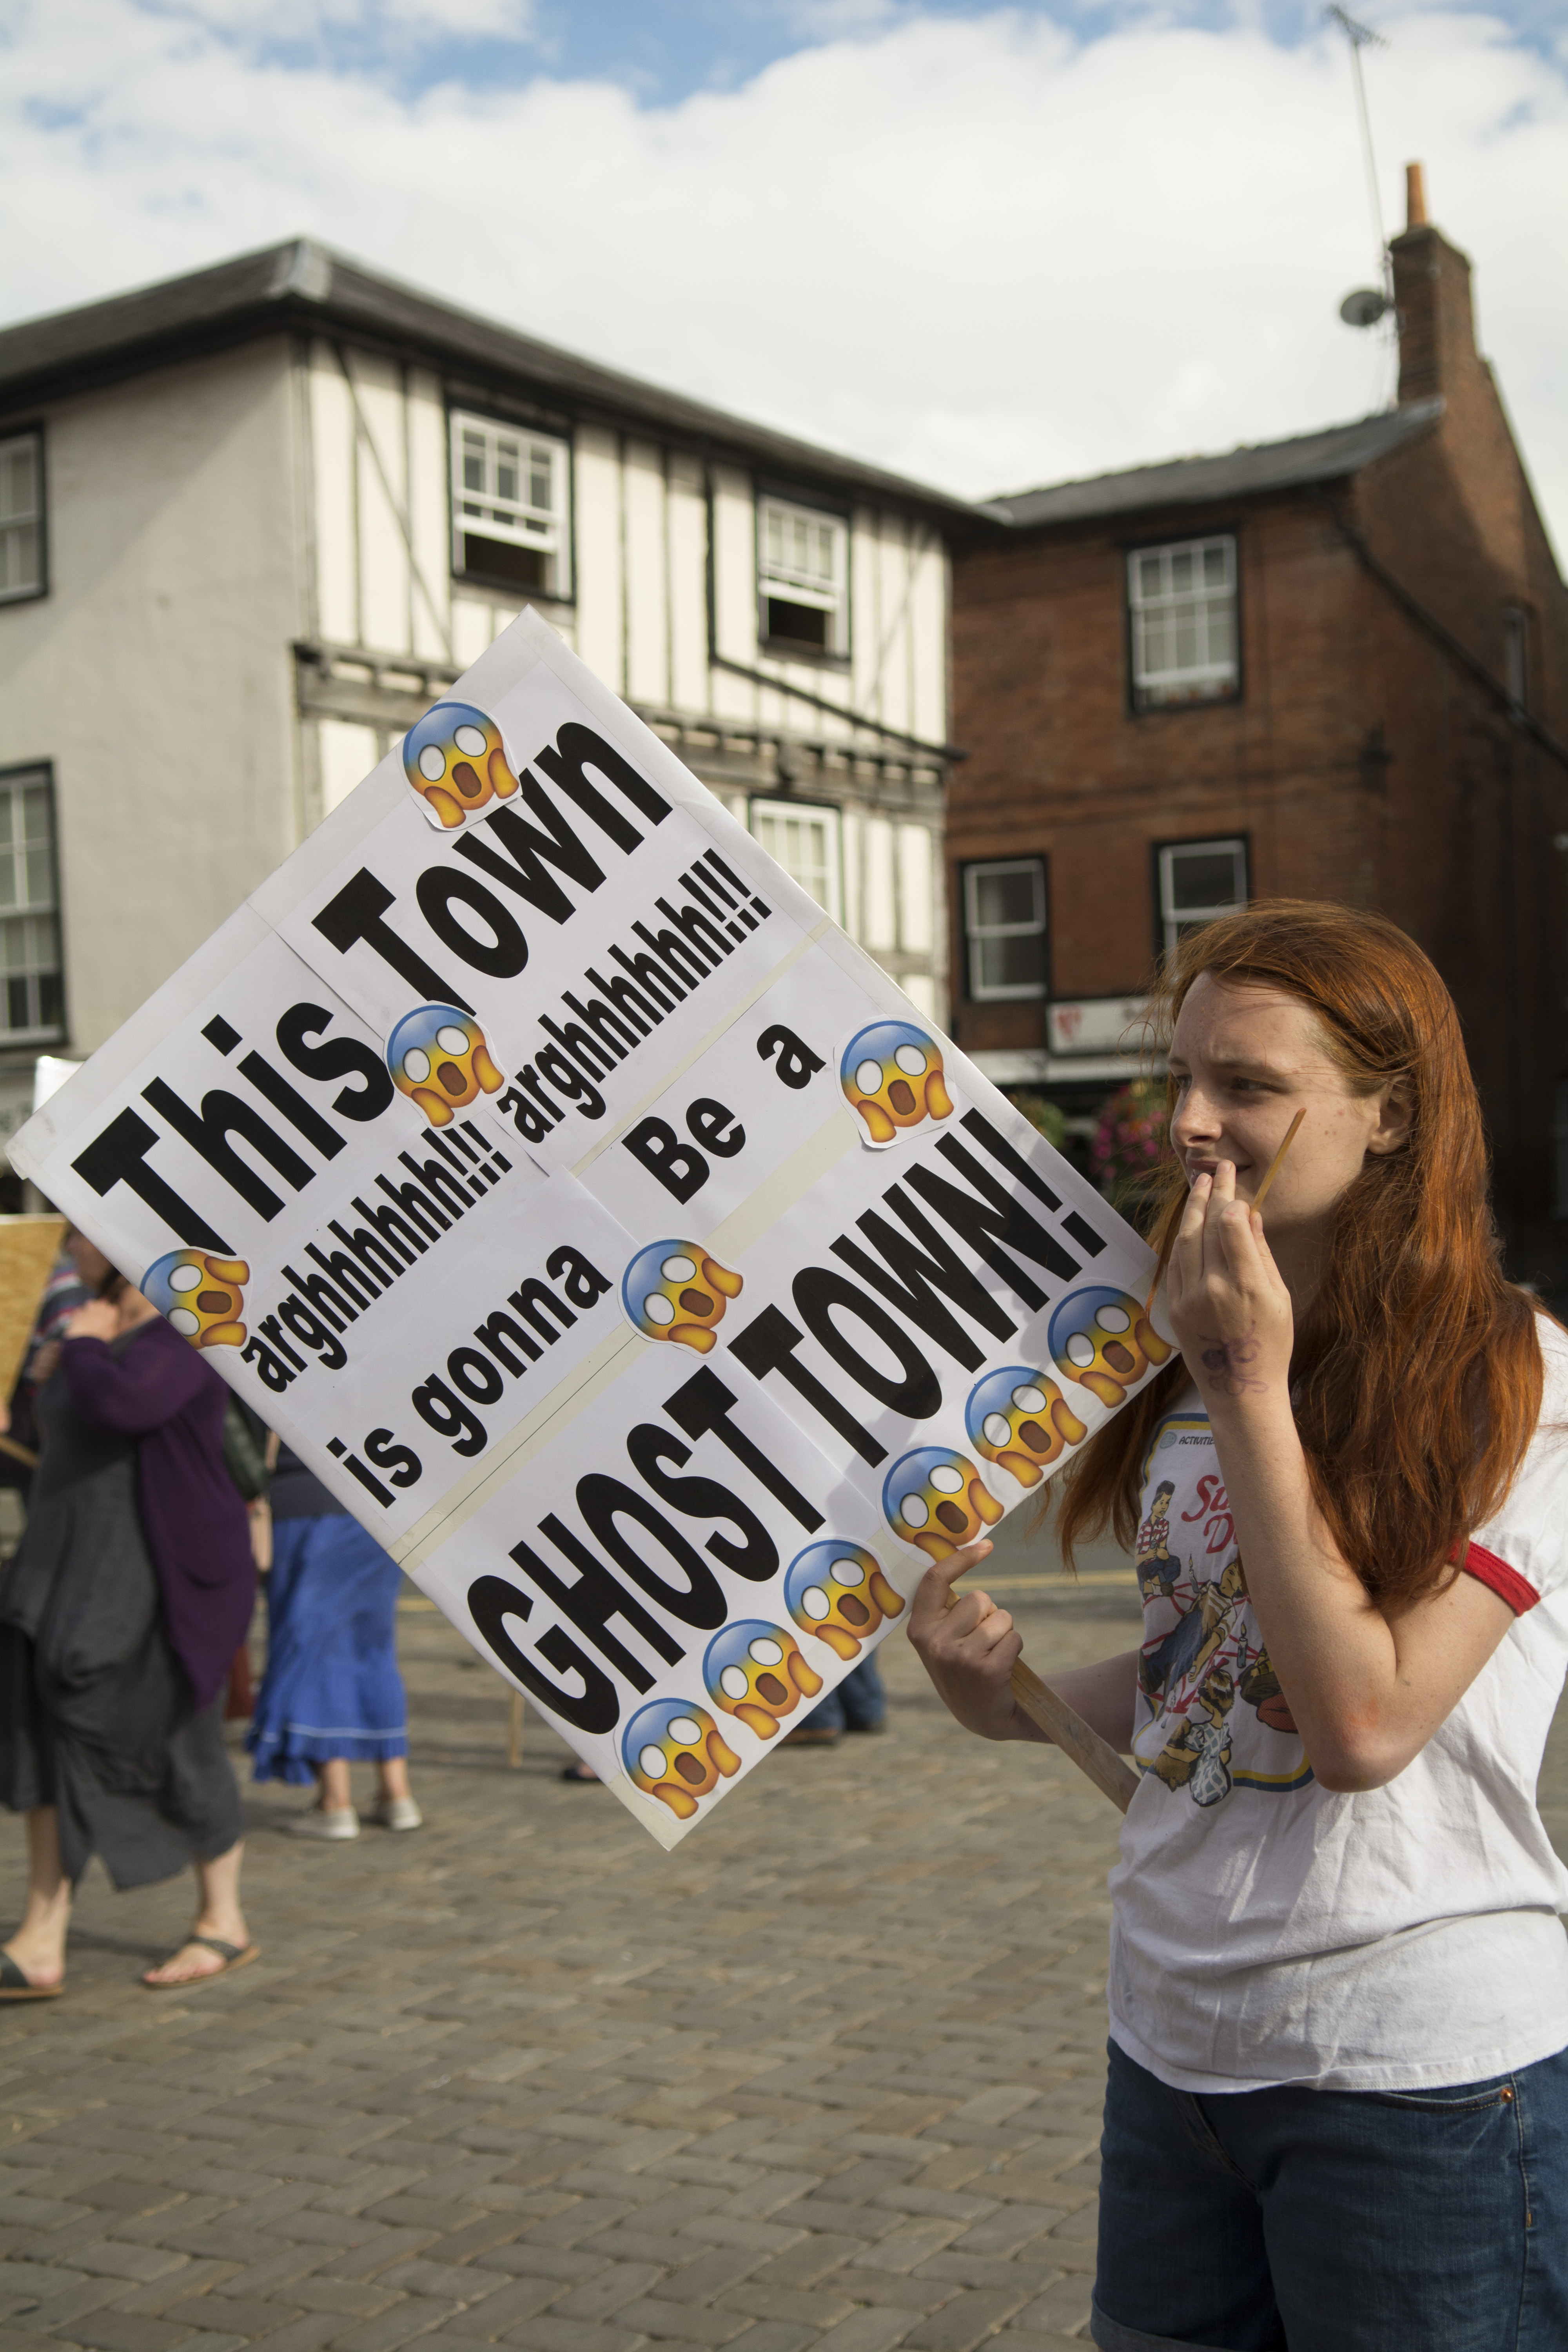 Huge turnout for Ludlow parking protest last night – now Shropshire Council must deliver